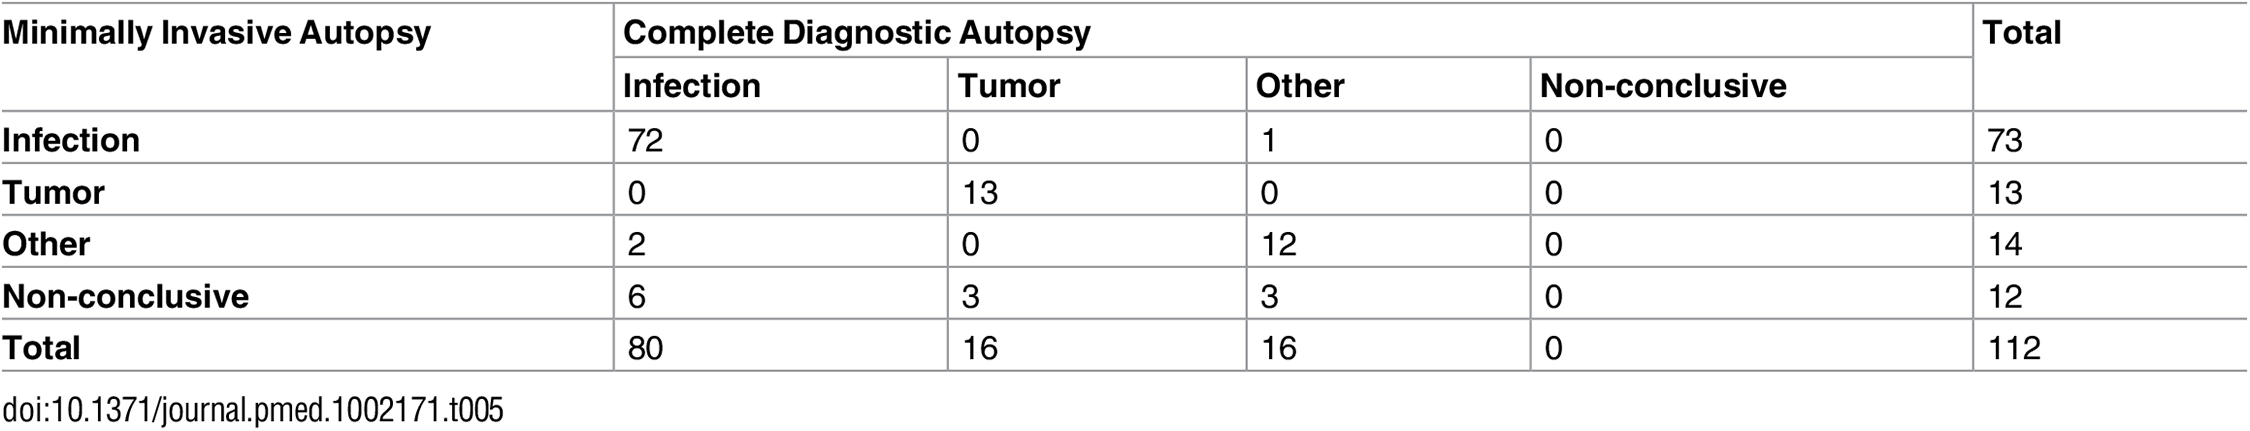 Correlation between the minimally invasive autopsy diagnosis and the complete diagnostic autopsy diagnosis of all cases, grouped according to the major disease categories.